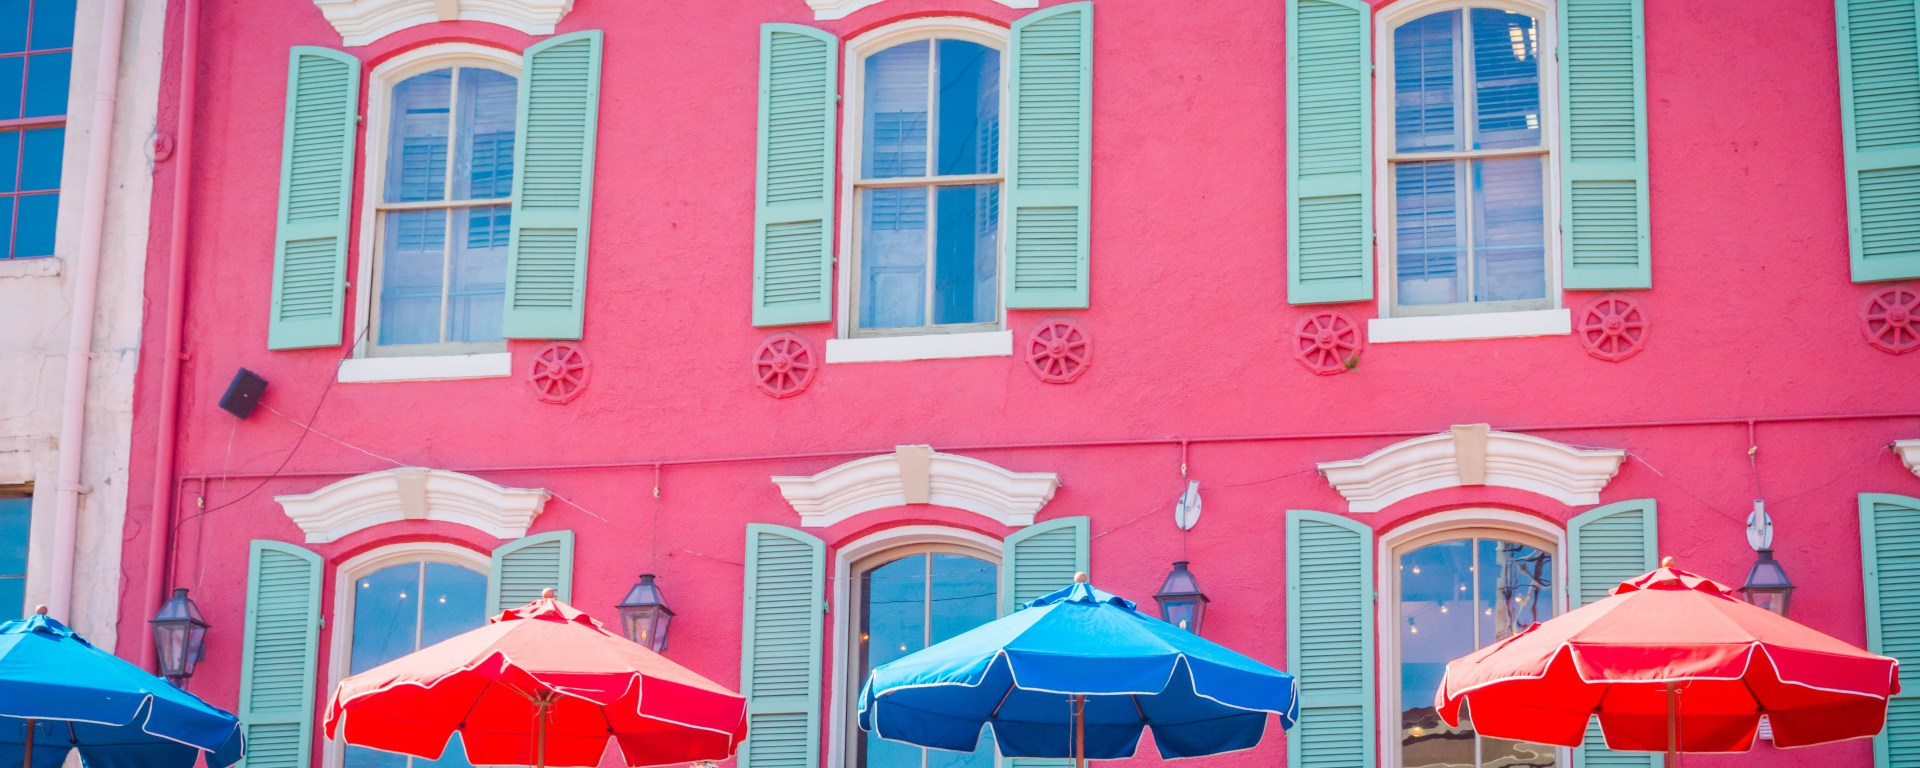 Bright buildings in New Orleans